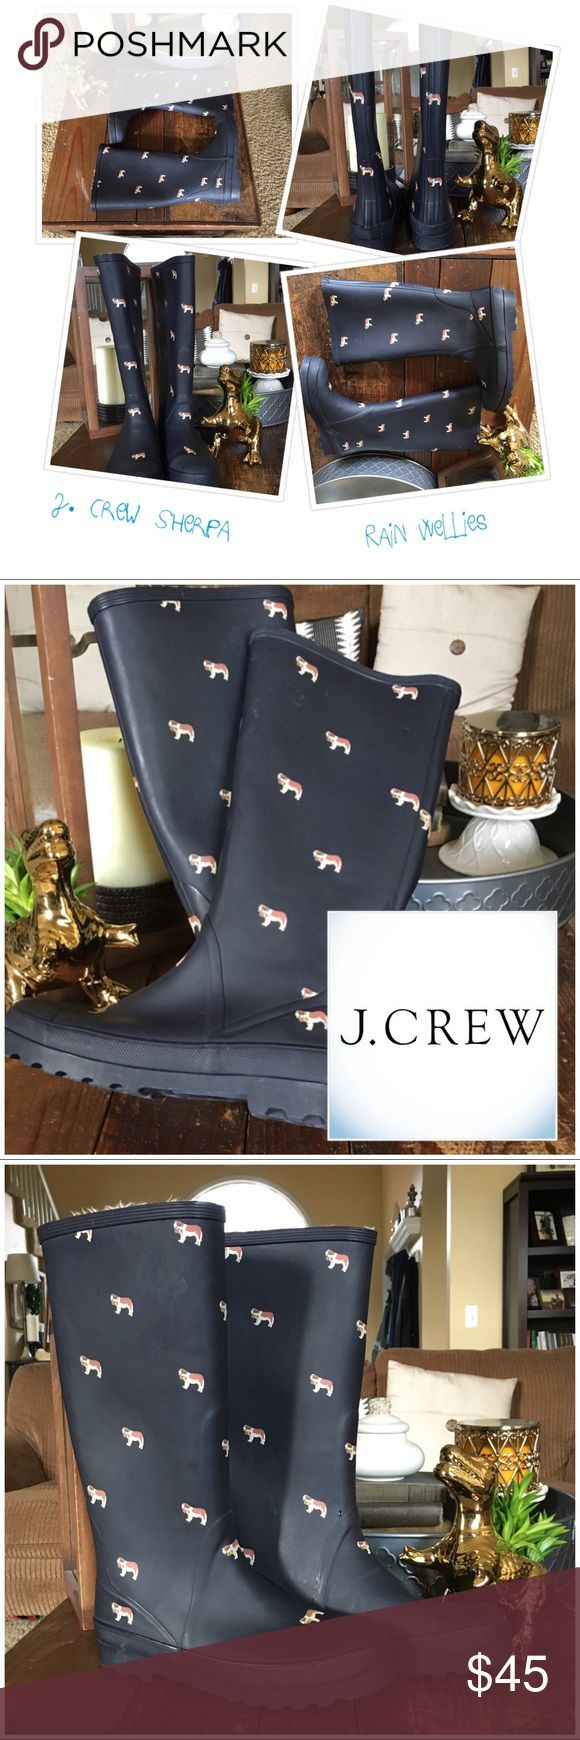 Sherpa Lined Rain Boots J. Crew Adorable J. Crew St. Bernard Navy Blue Wellies. These are so comfy and keep your feet warm and dry on those cold drizzling days. Sherpa lined - NOT typical rain boots. These have not been worn often but please zoom in and examine to your satisfaction.   •Smoke free, hypoallergenic pet friendly home; we have a Morkie   •No props included J. Crew Shoes Winter & Rain Boots